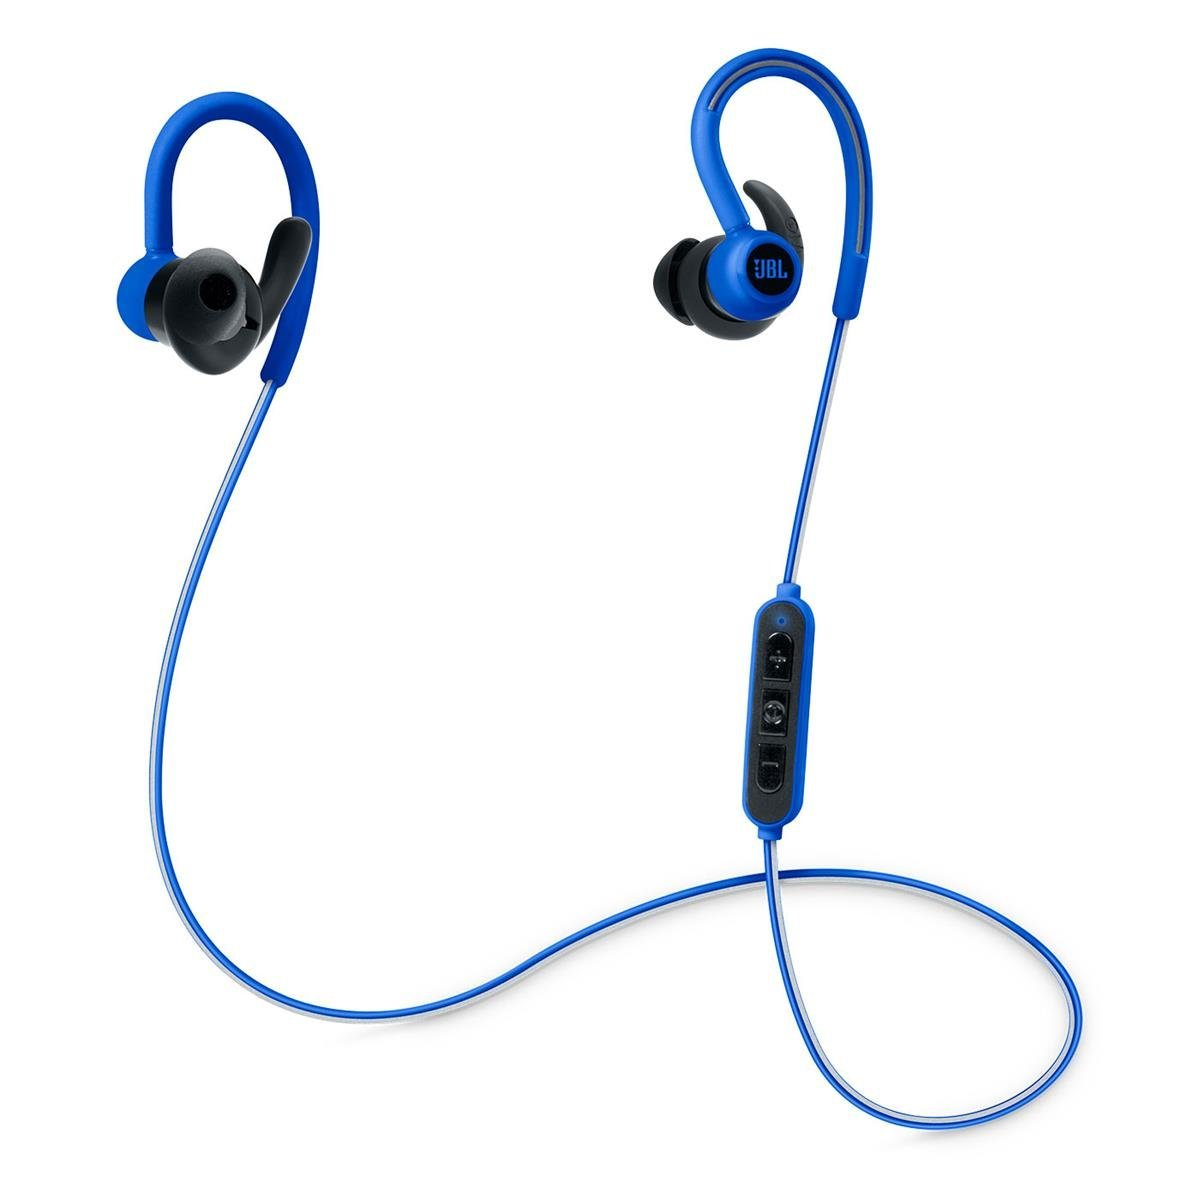 Jbl Wireless Bluetooth Stereo Earbud Headphones Trusted Wiring Diagram Headset X Under Armour Earphone Headphone Handsfree Reflect Contour In Ear World Tempo Blue